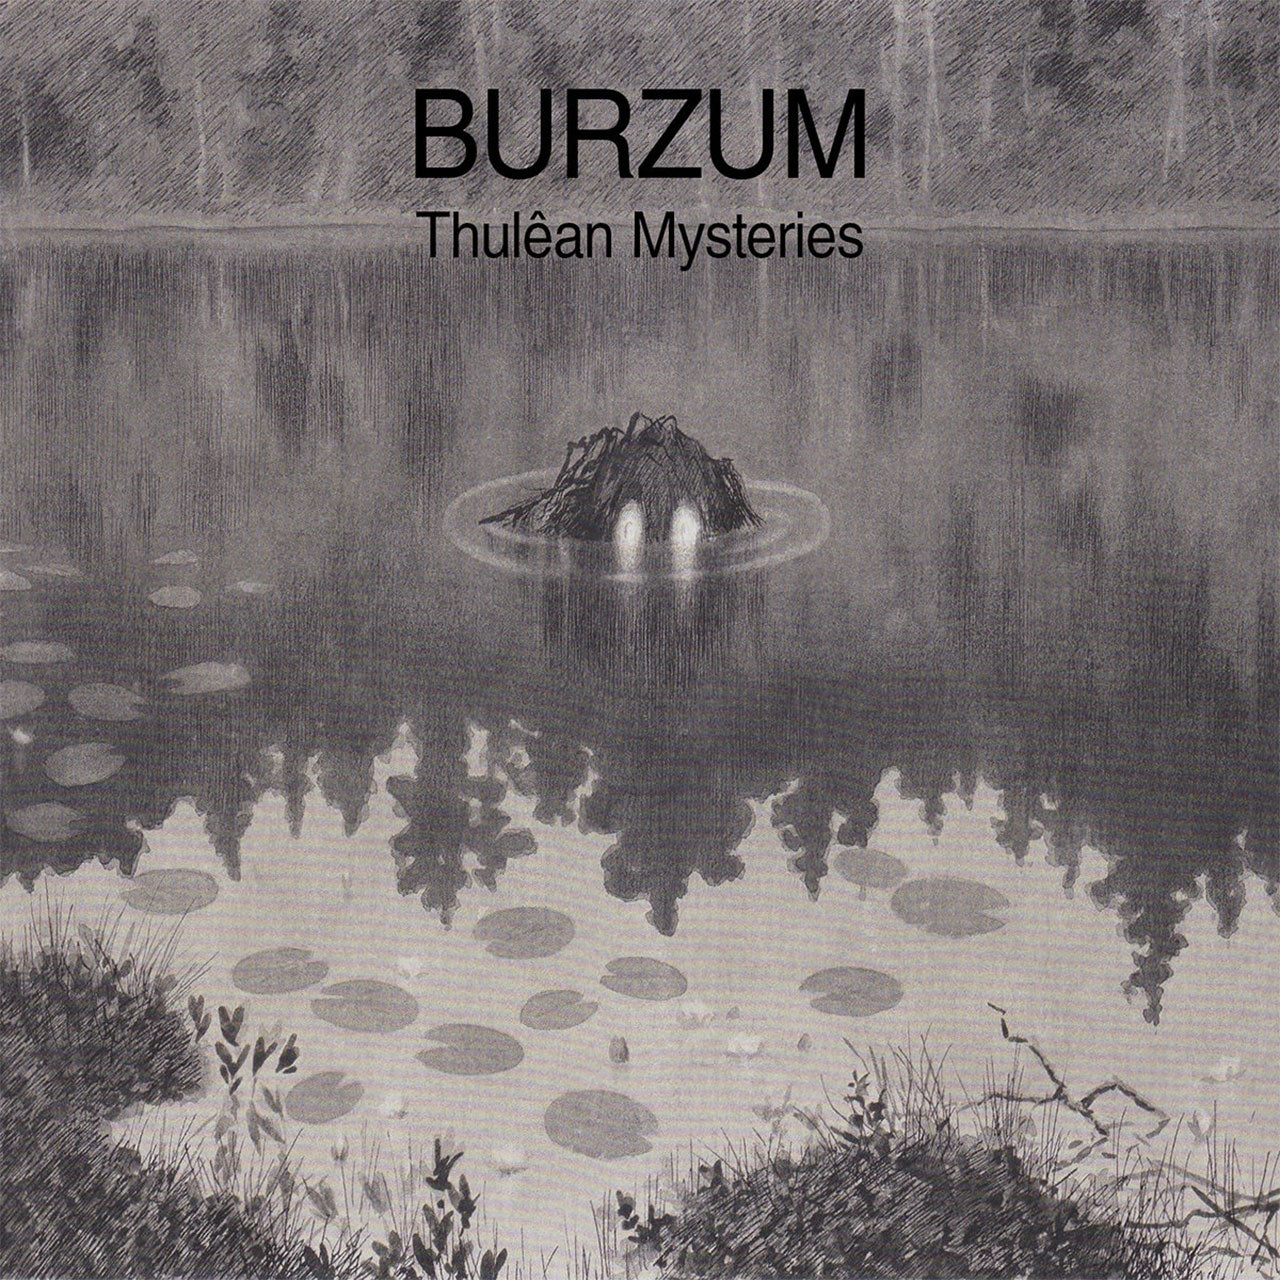 Burzum - Thulean Mysteries (2CD)